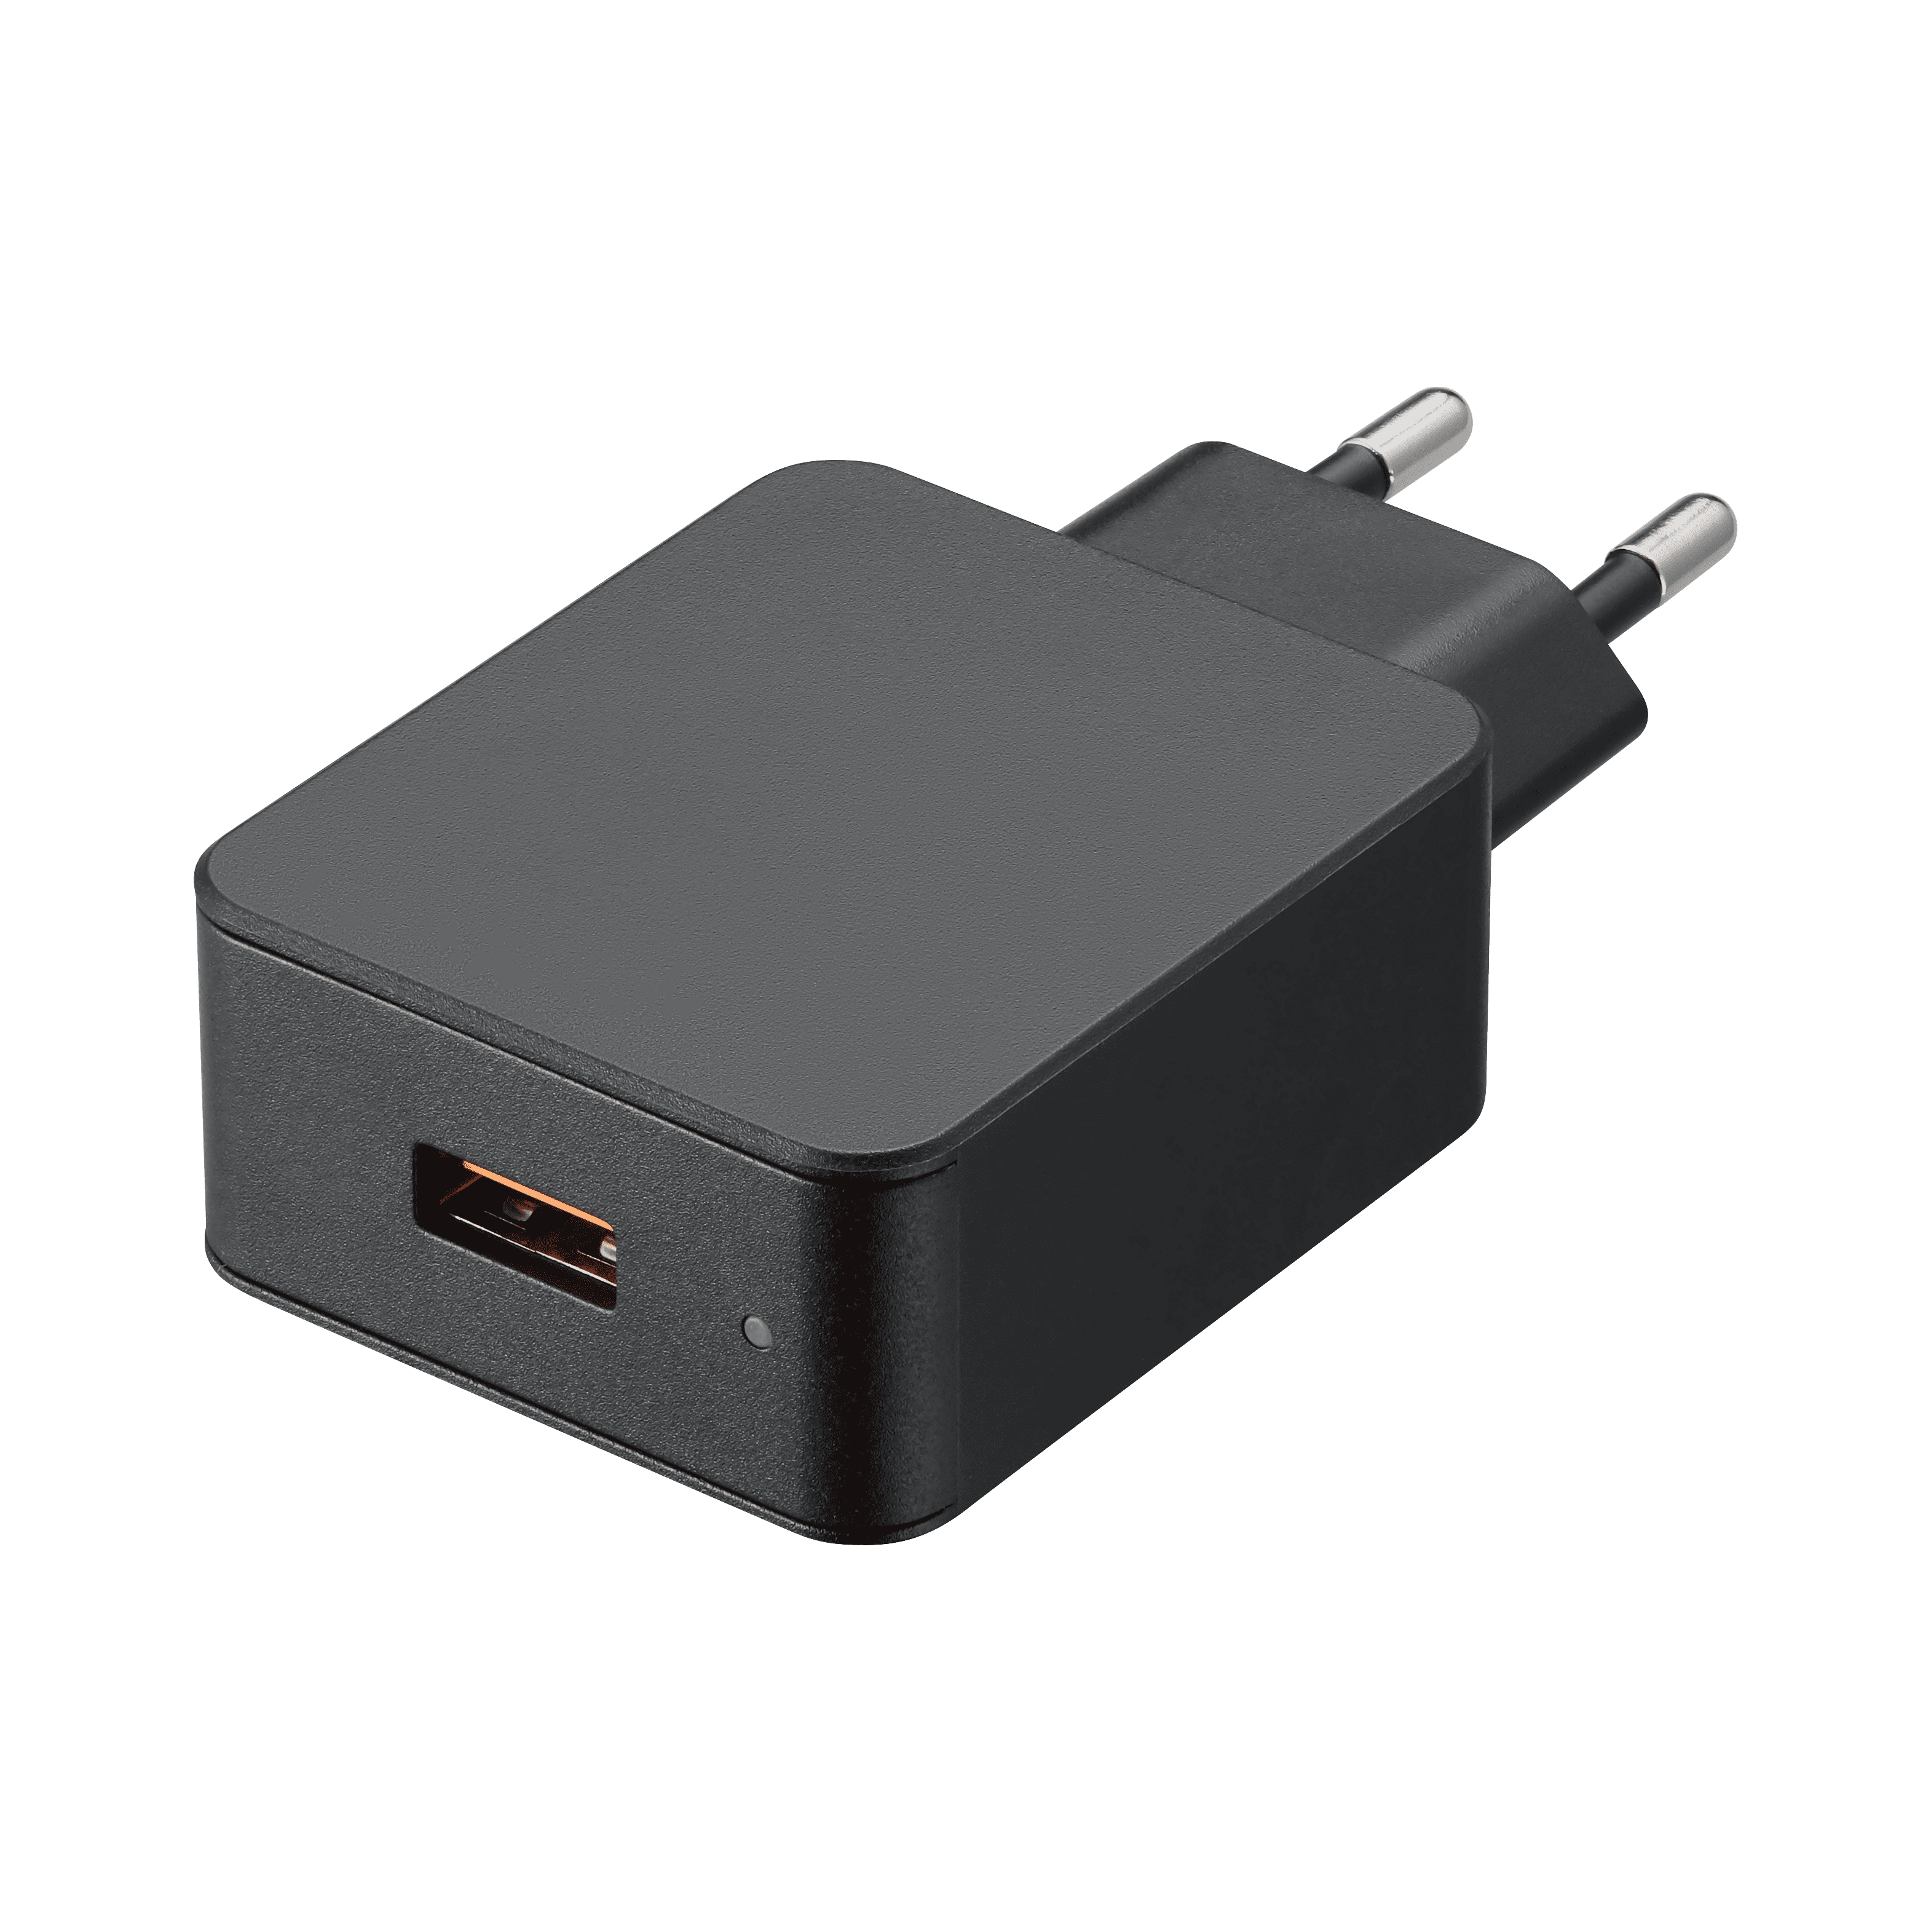 TAQ-312 Compact Quick charge 3.0 single USB wall charger